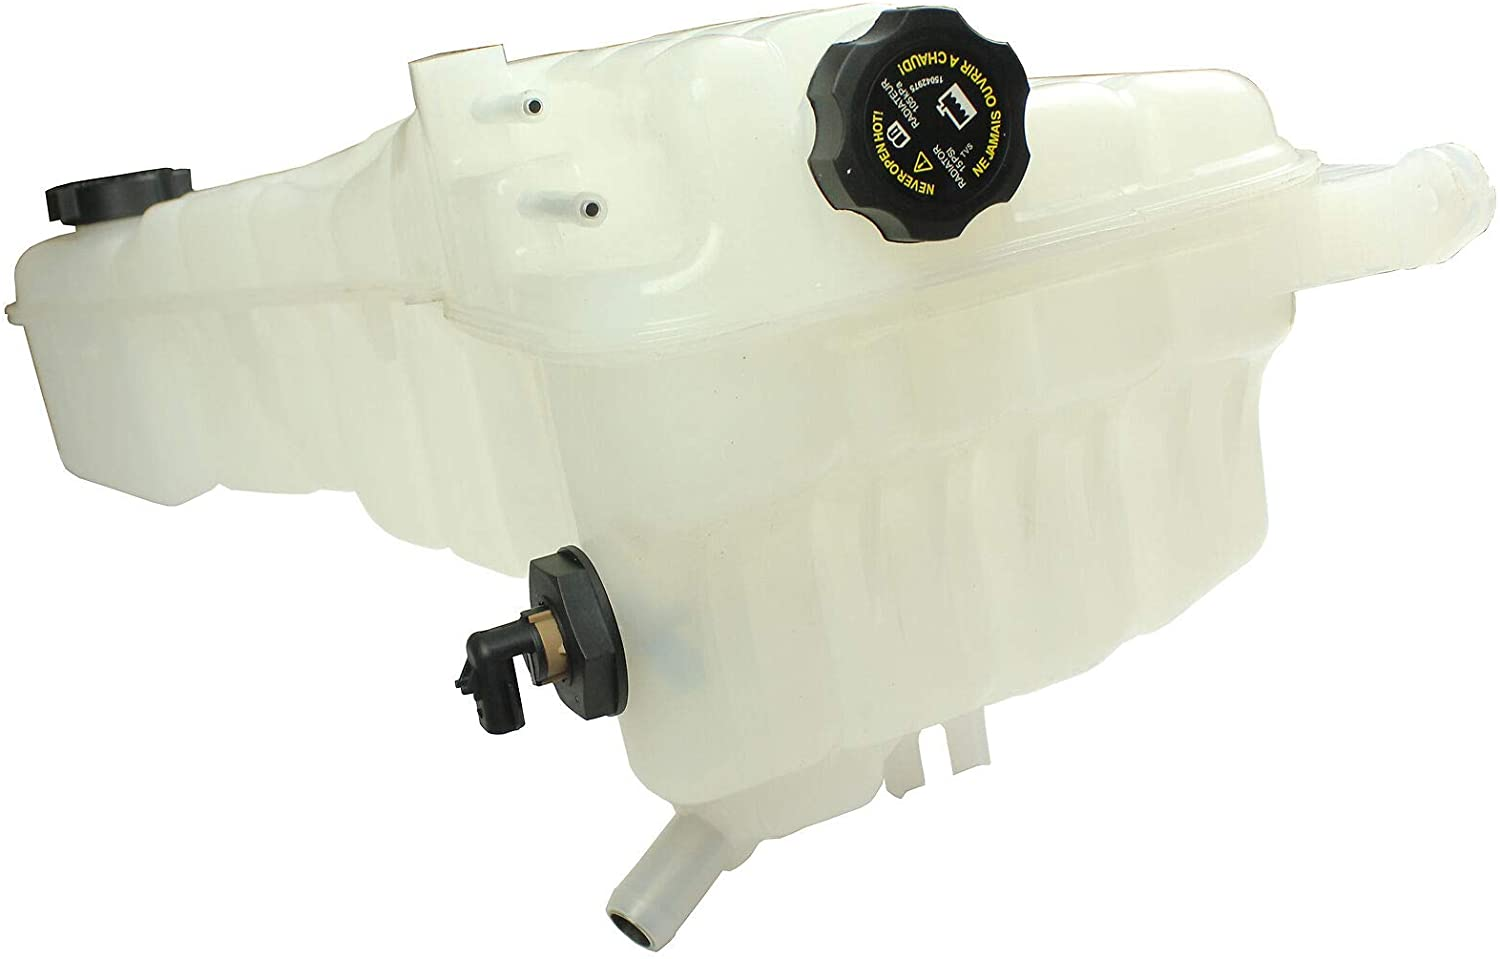 LOSTAR Engine Coolant Recovery Tank For 2012 2013 2014 2015 2016 Freightliner M2 106 108 A0528531000,603-5207